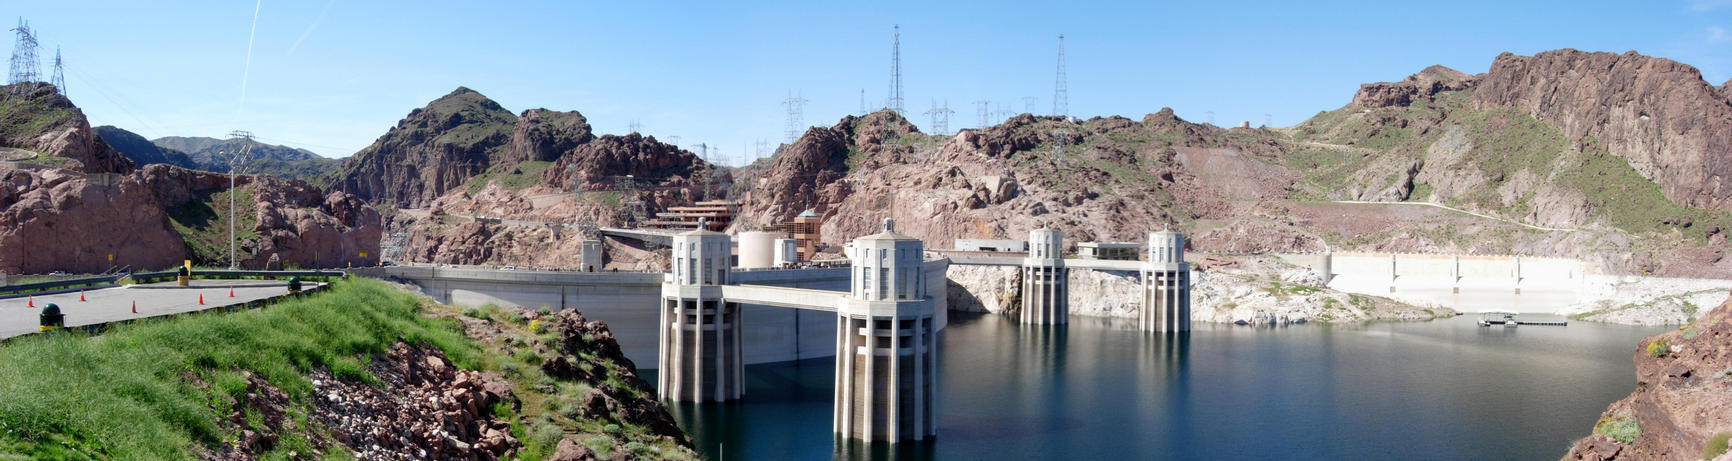 Hoover Dam 01 by asm495